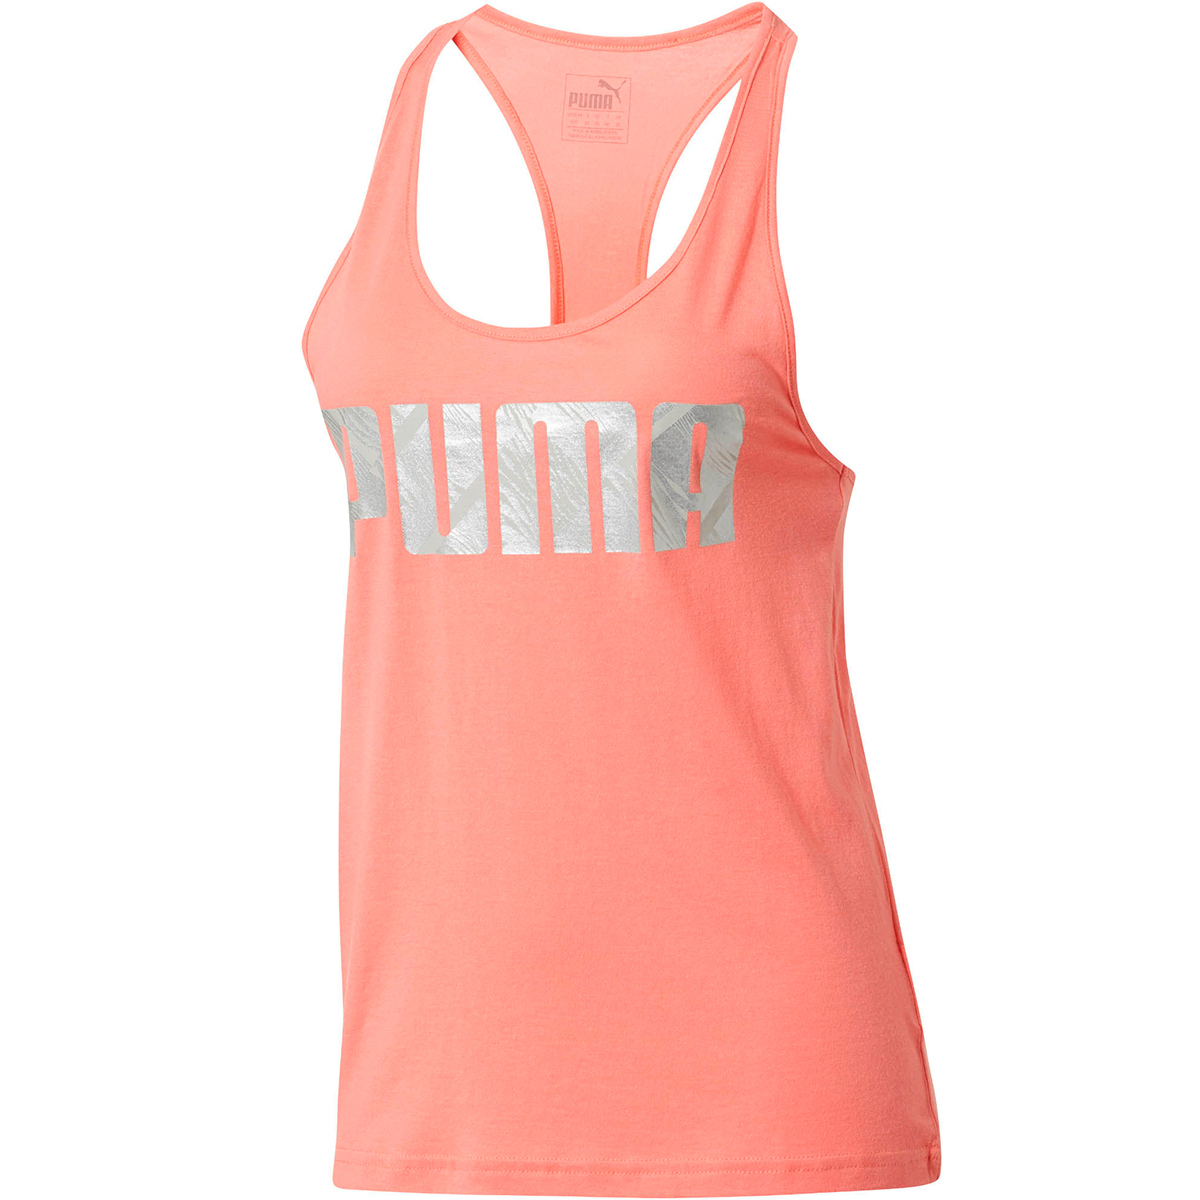 Puma Women's Summer Tank Top - Red, M